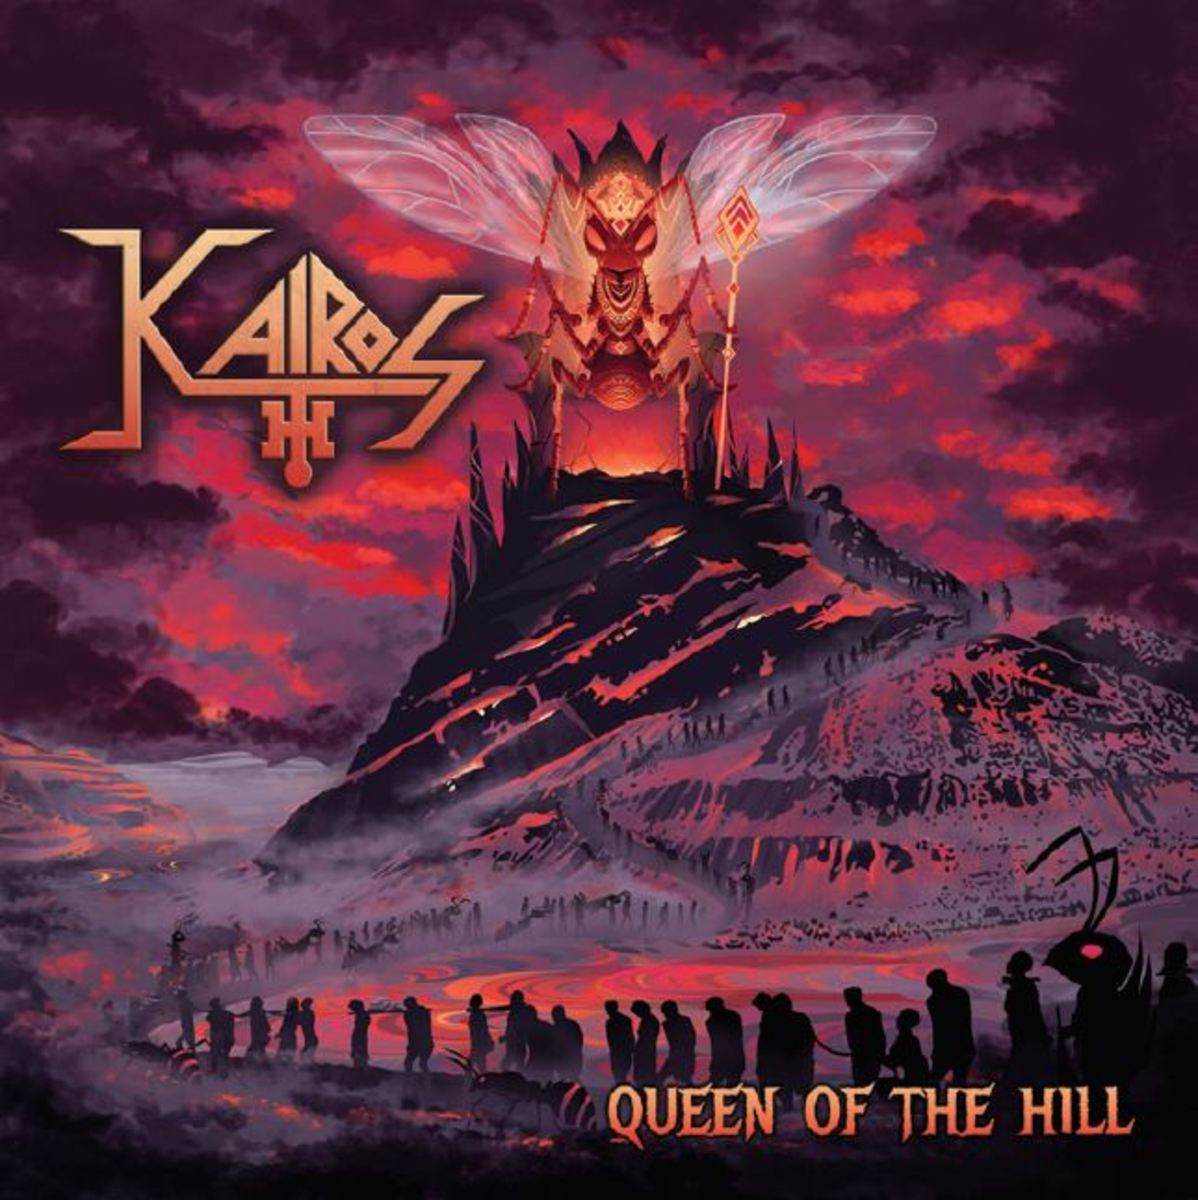 kairos-queen-of-the-hill-album-review